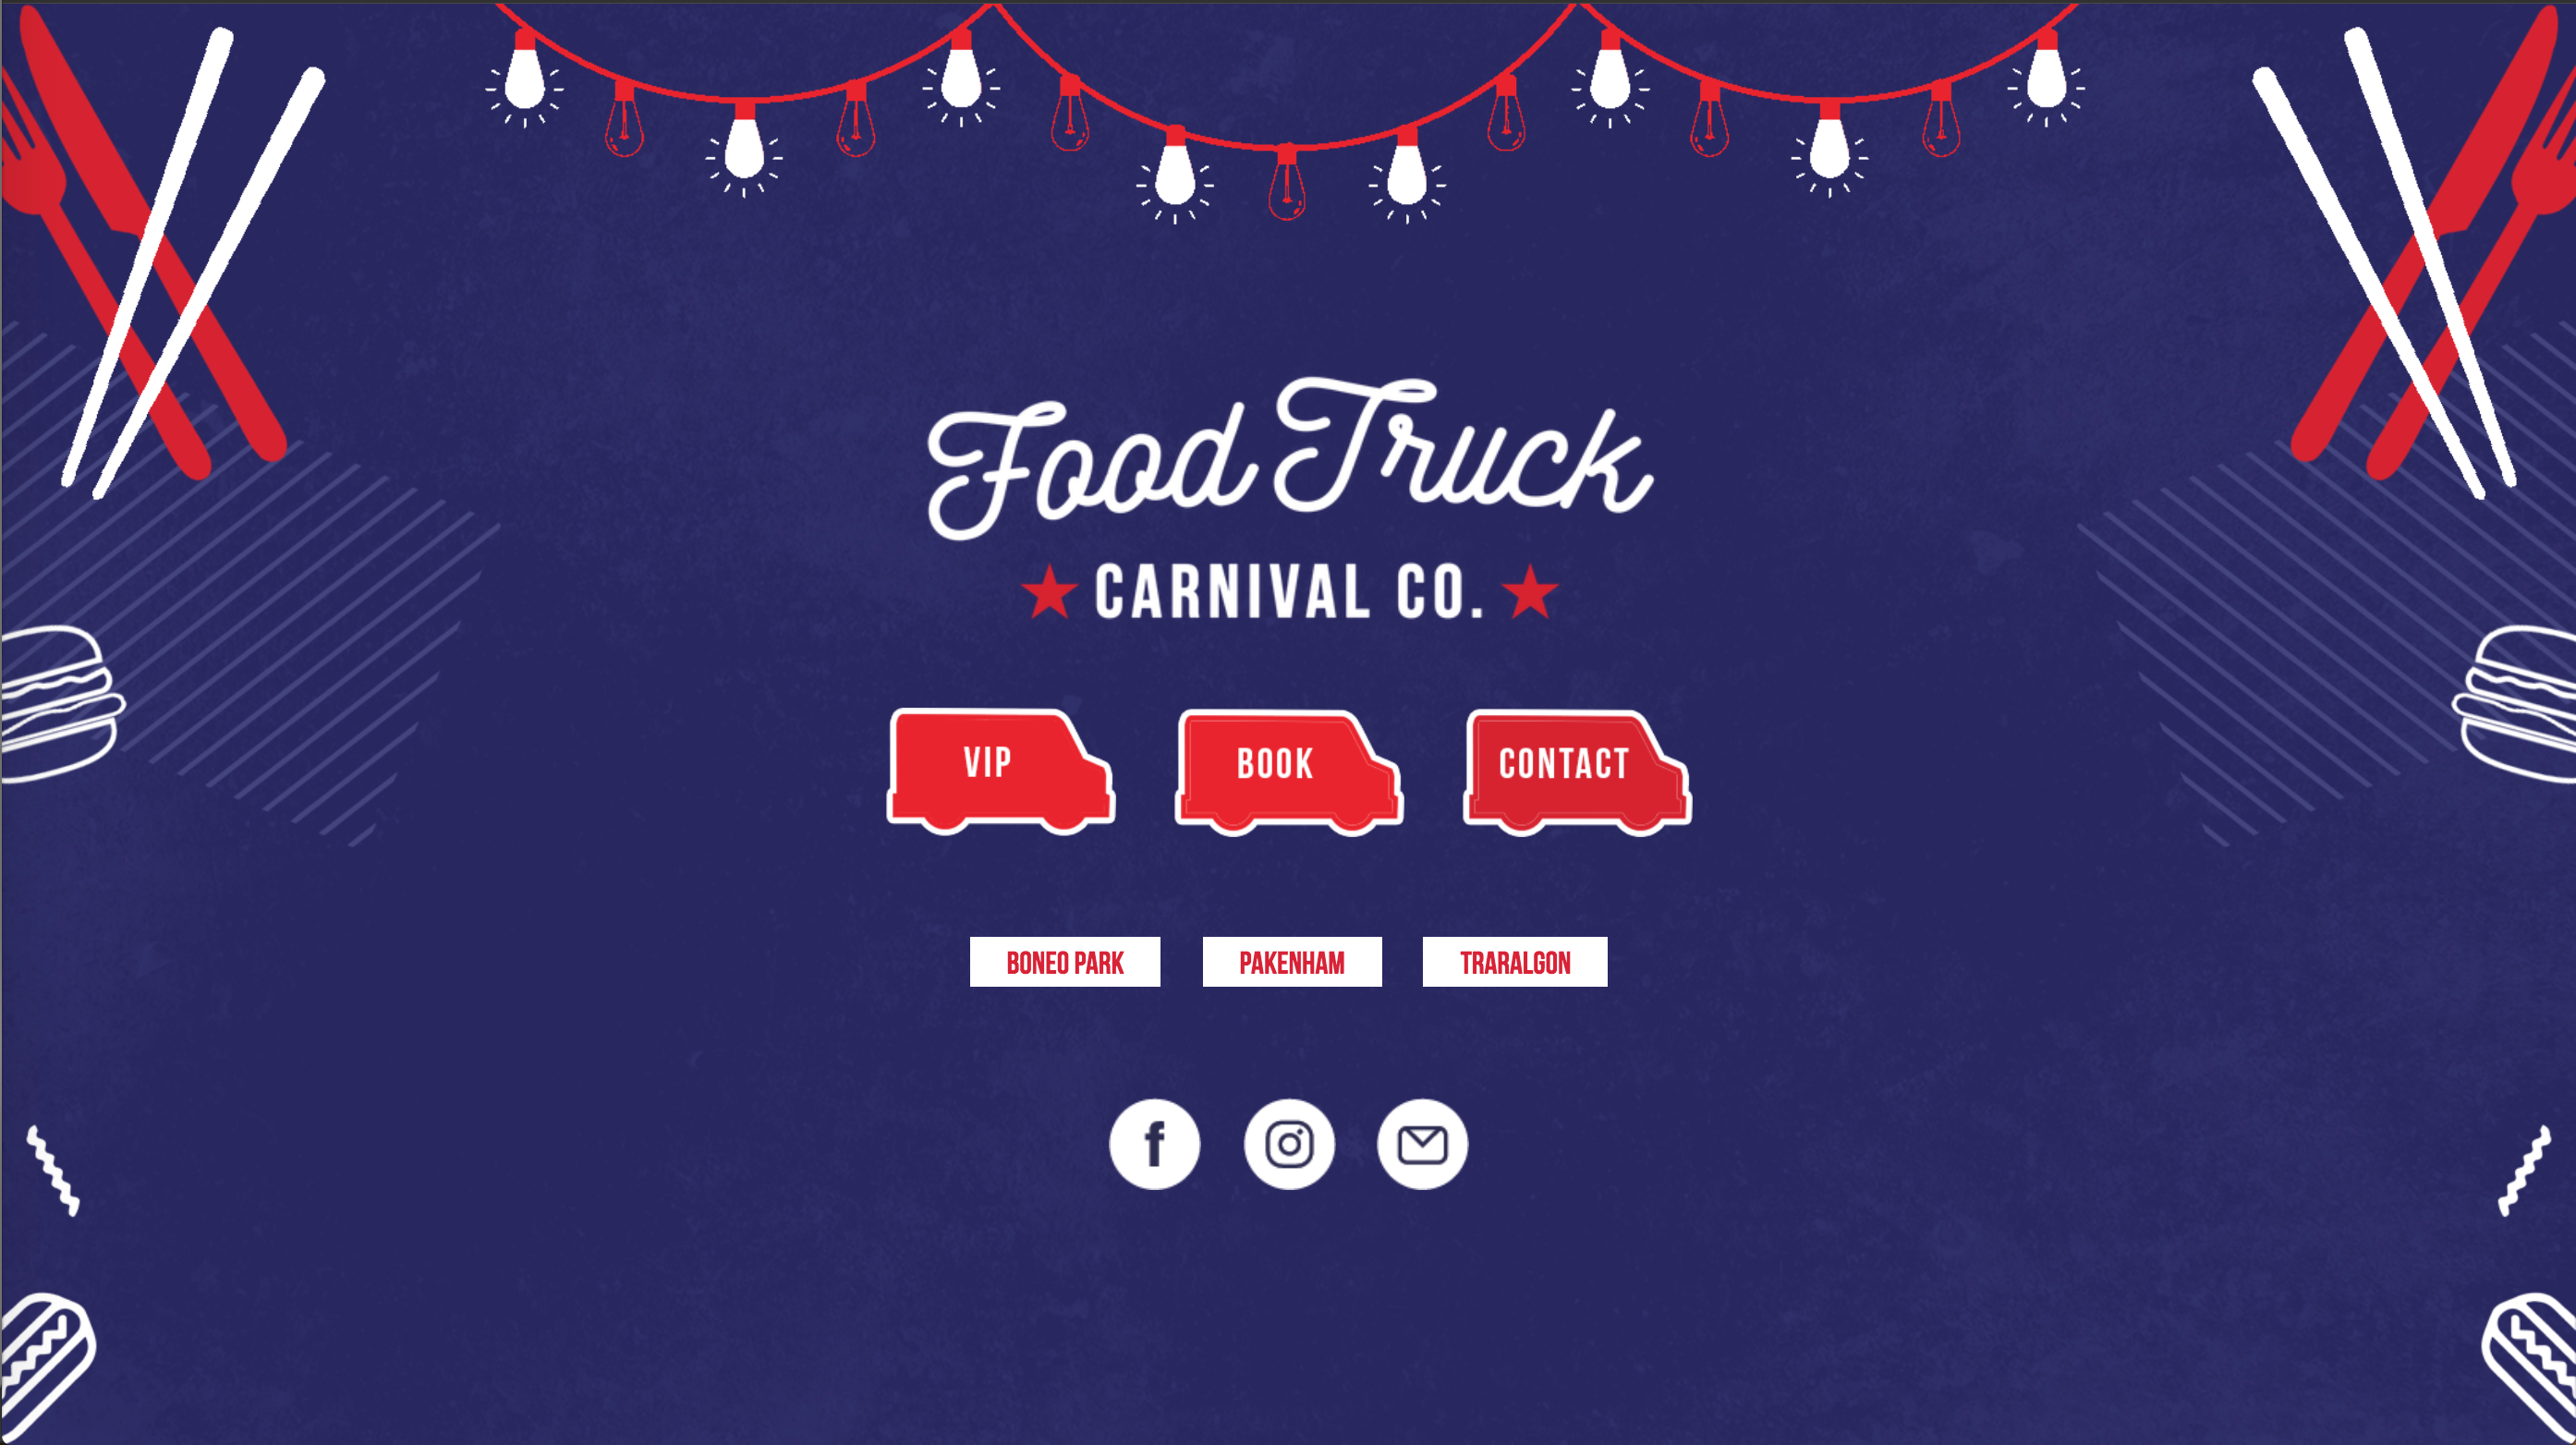 Food Truck Carnival Website Project Card